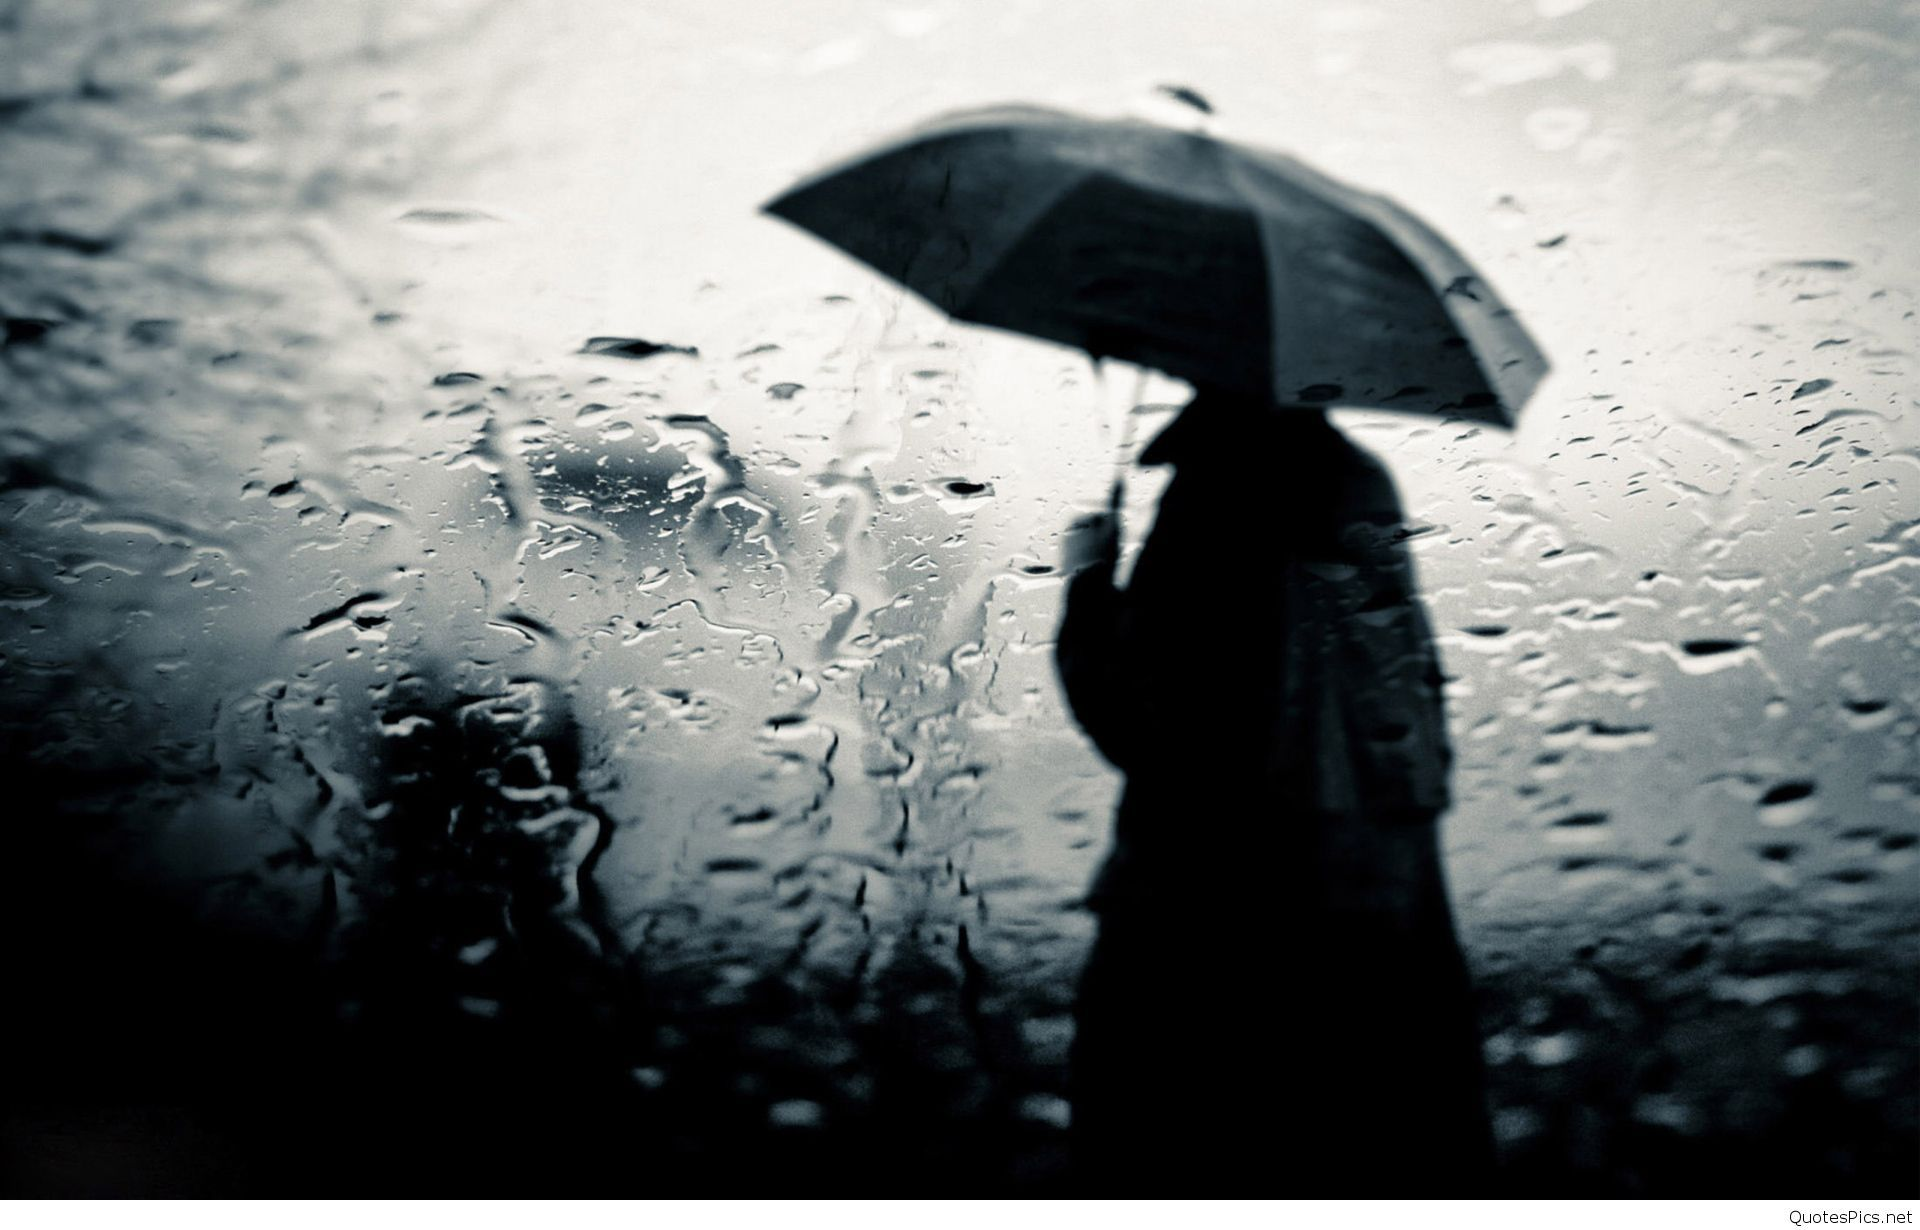 Alone Boy Images Pics And Wallpapers Hd Free Download Rainy Day Wallpaper Rain Wallpapers Rainy Mood